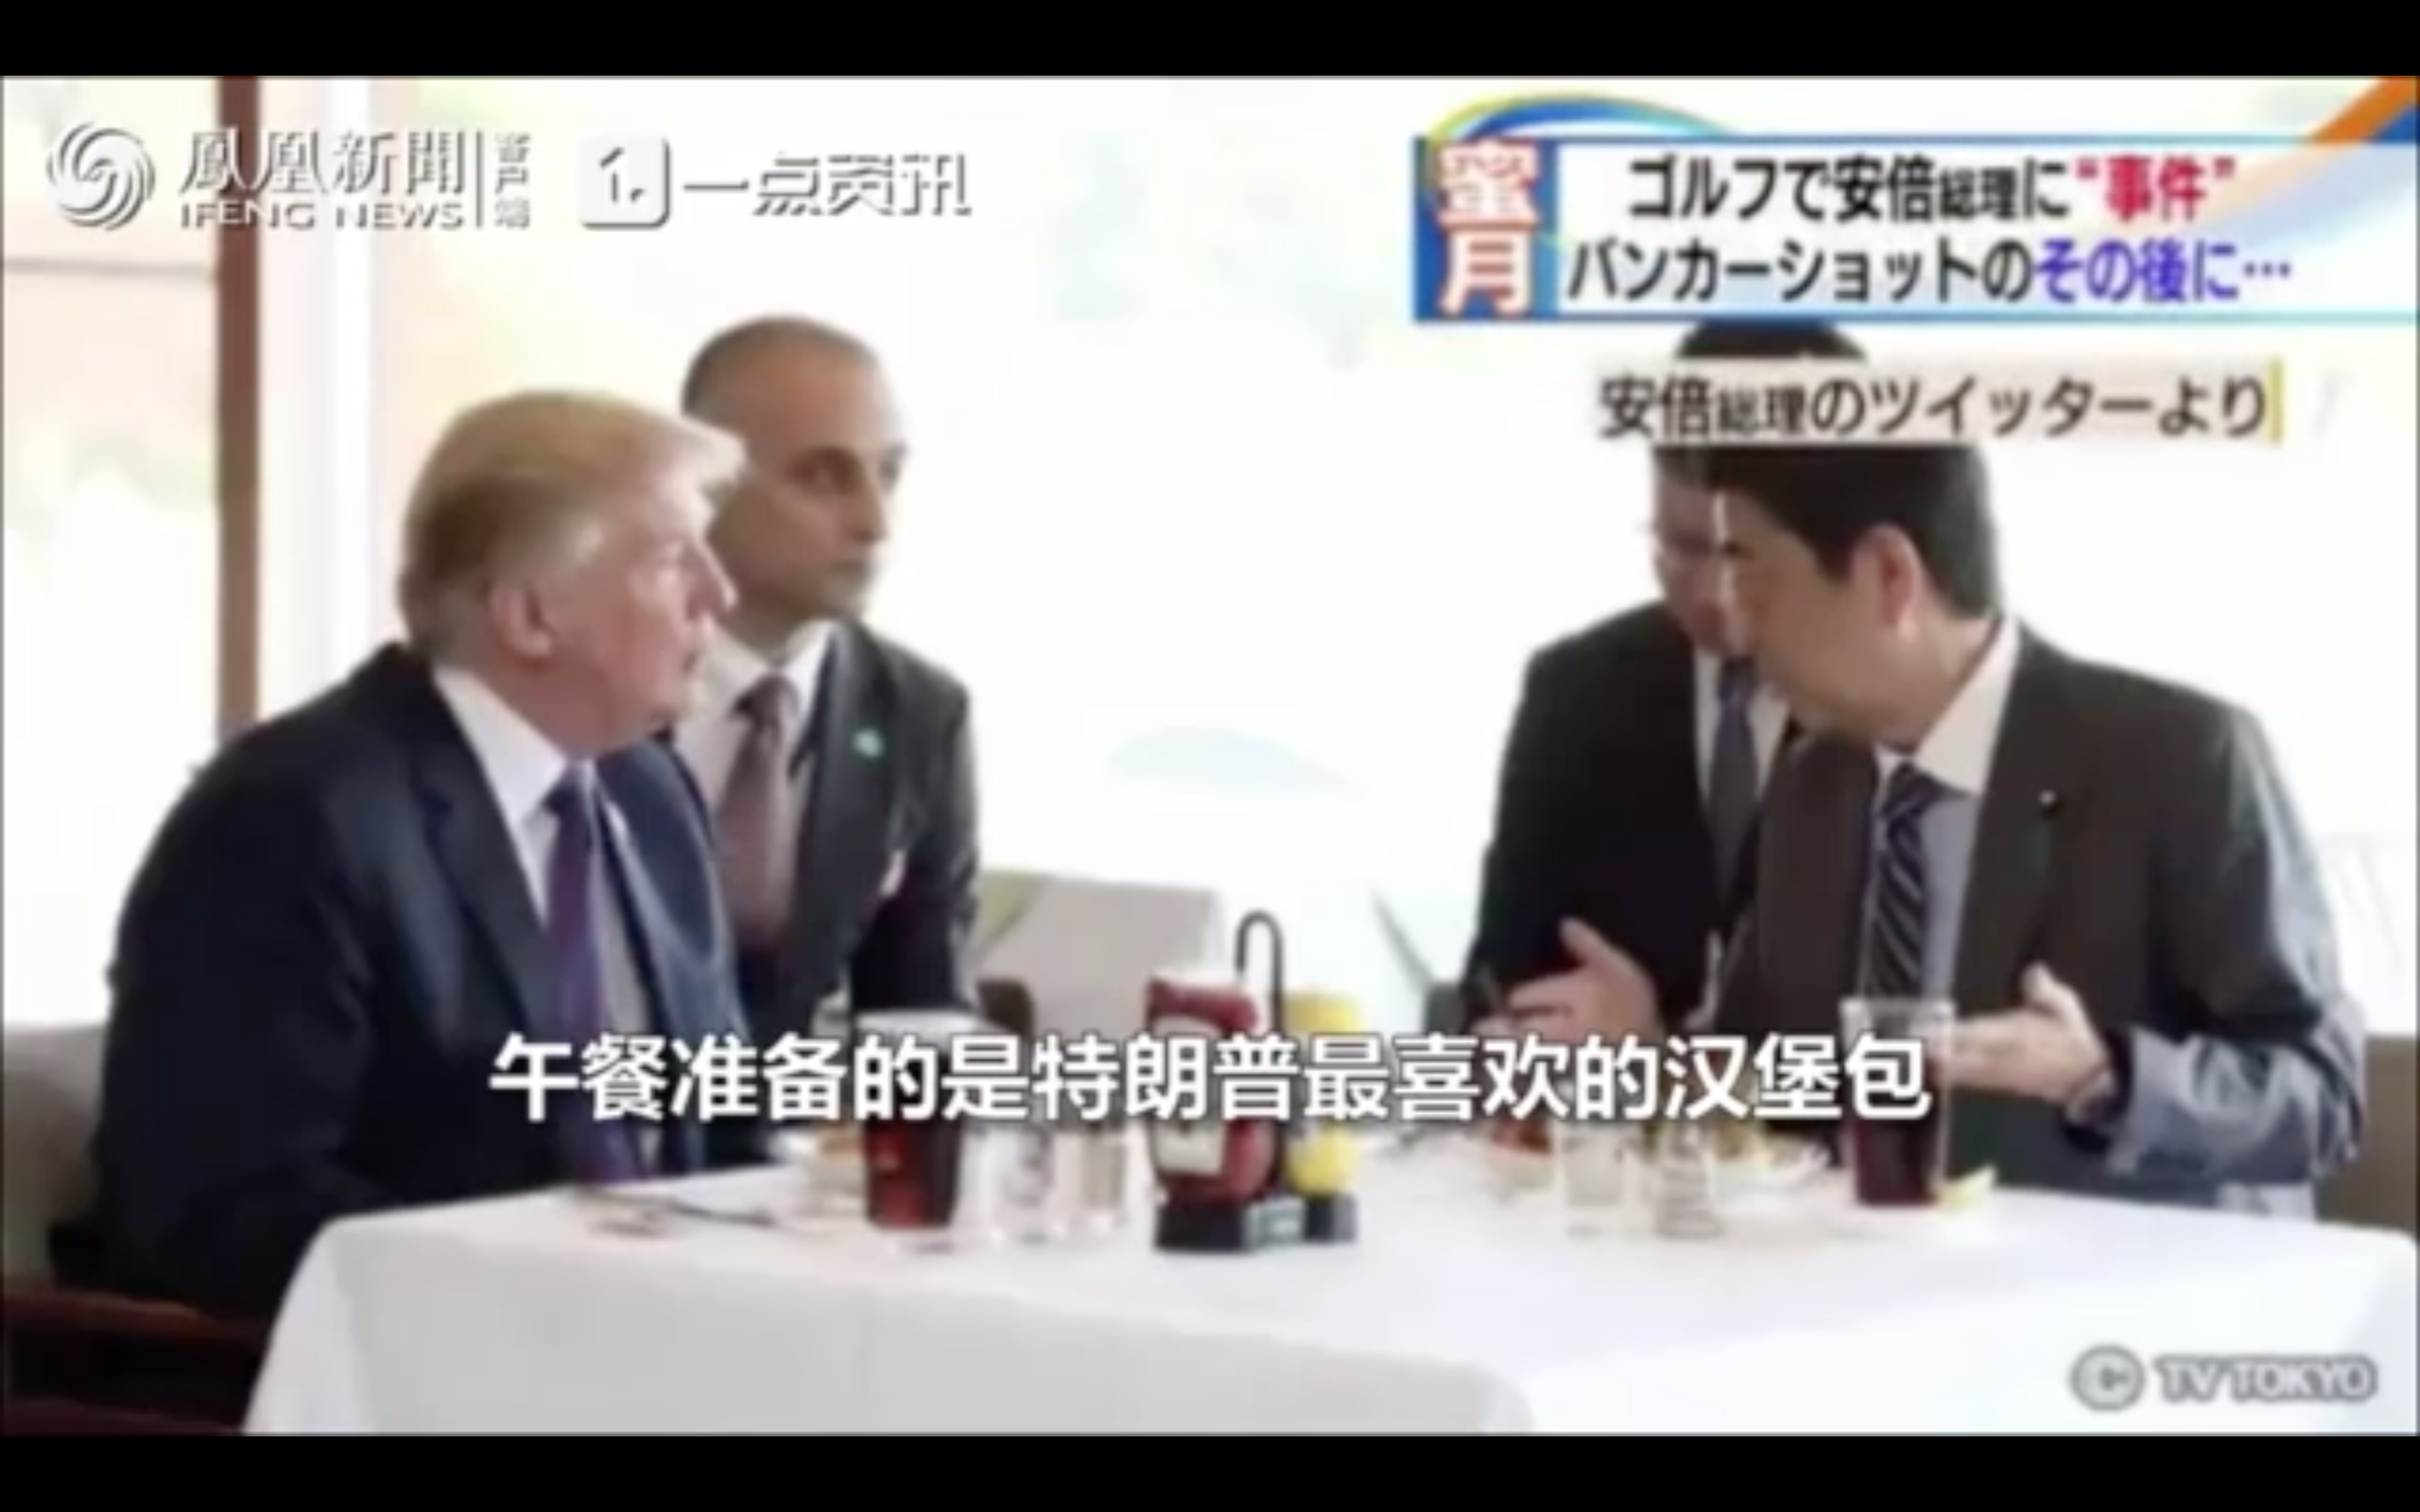 TV Tokyo airs embarrassing moment for Abe